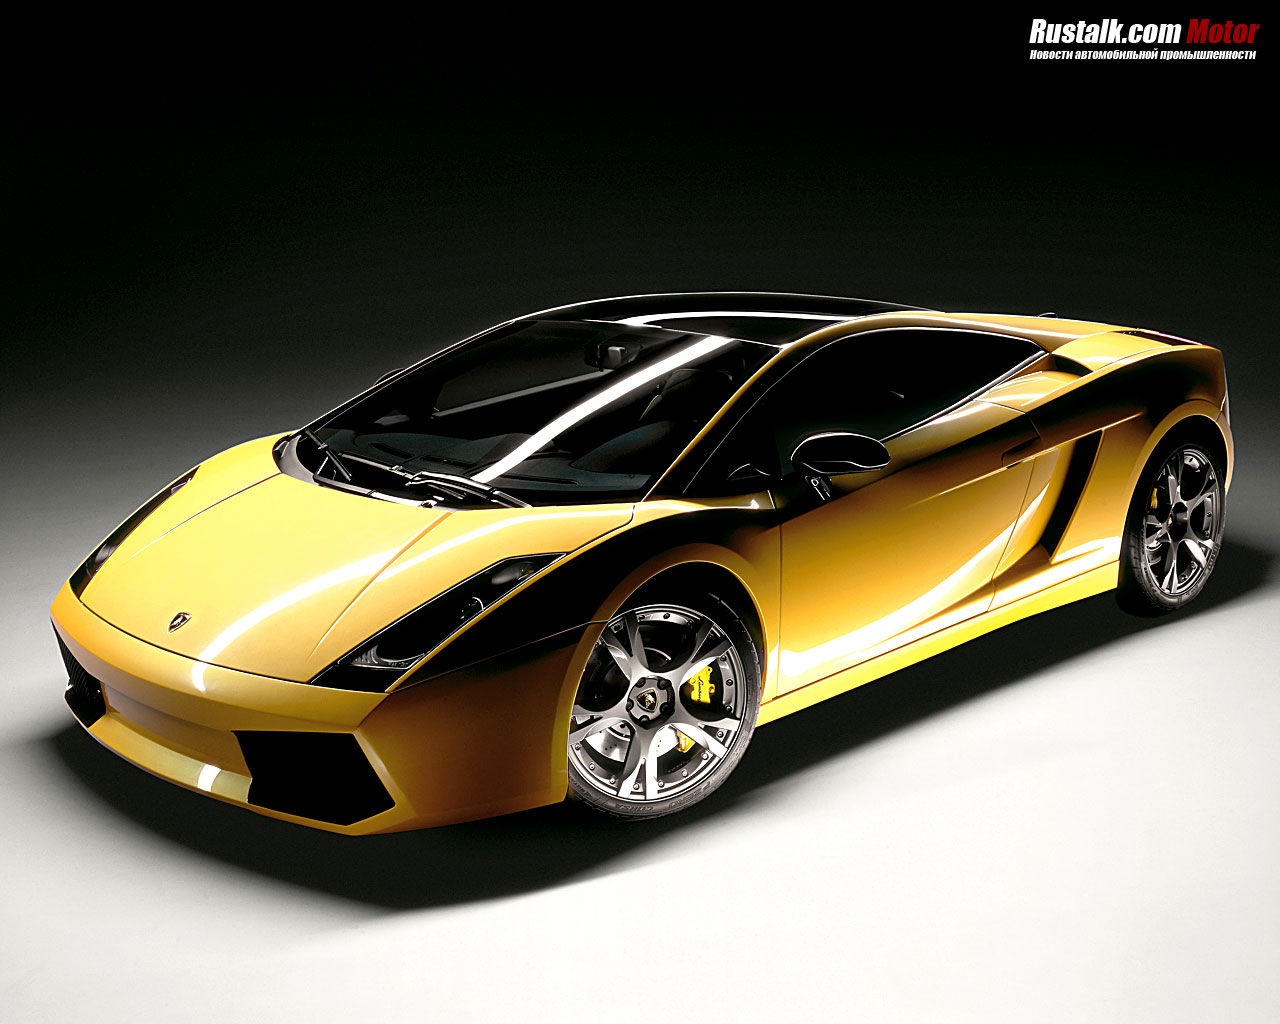 Auto Car Lamborghini Wallpaper 1280x1024